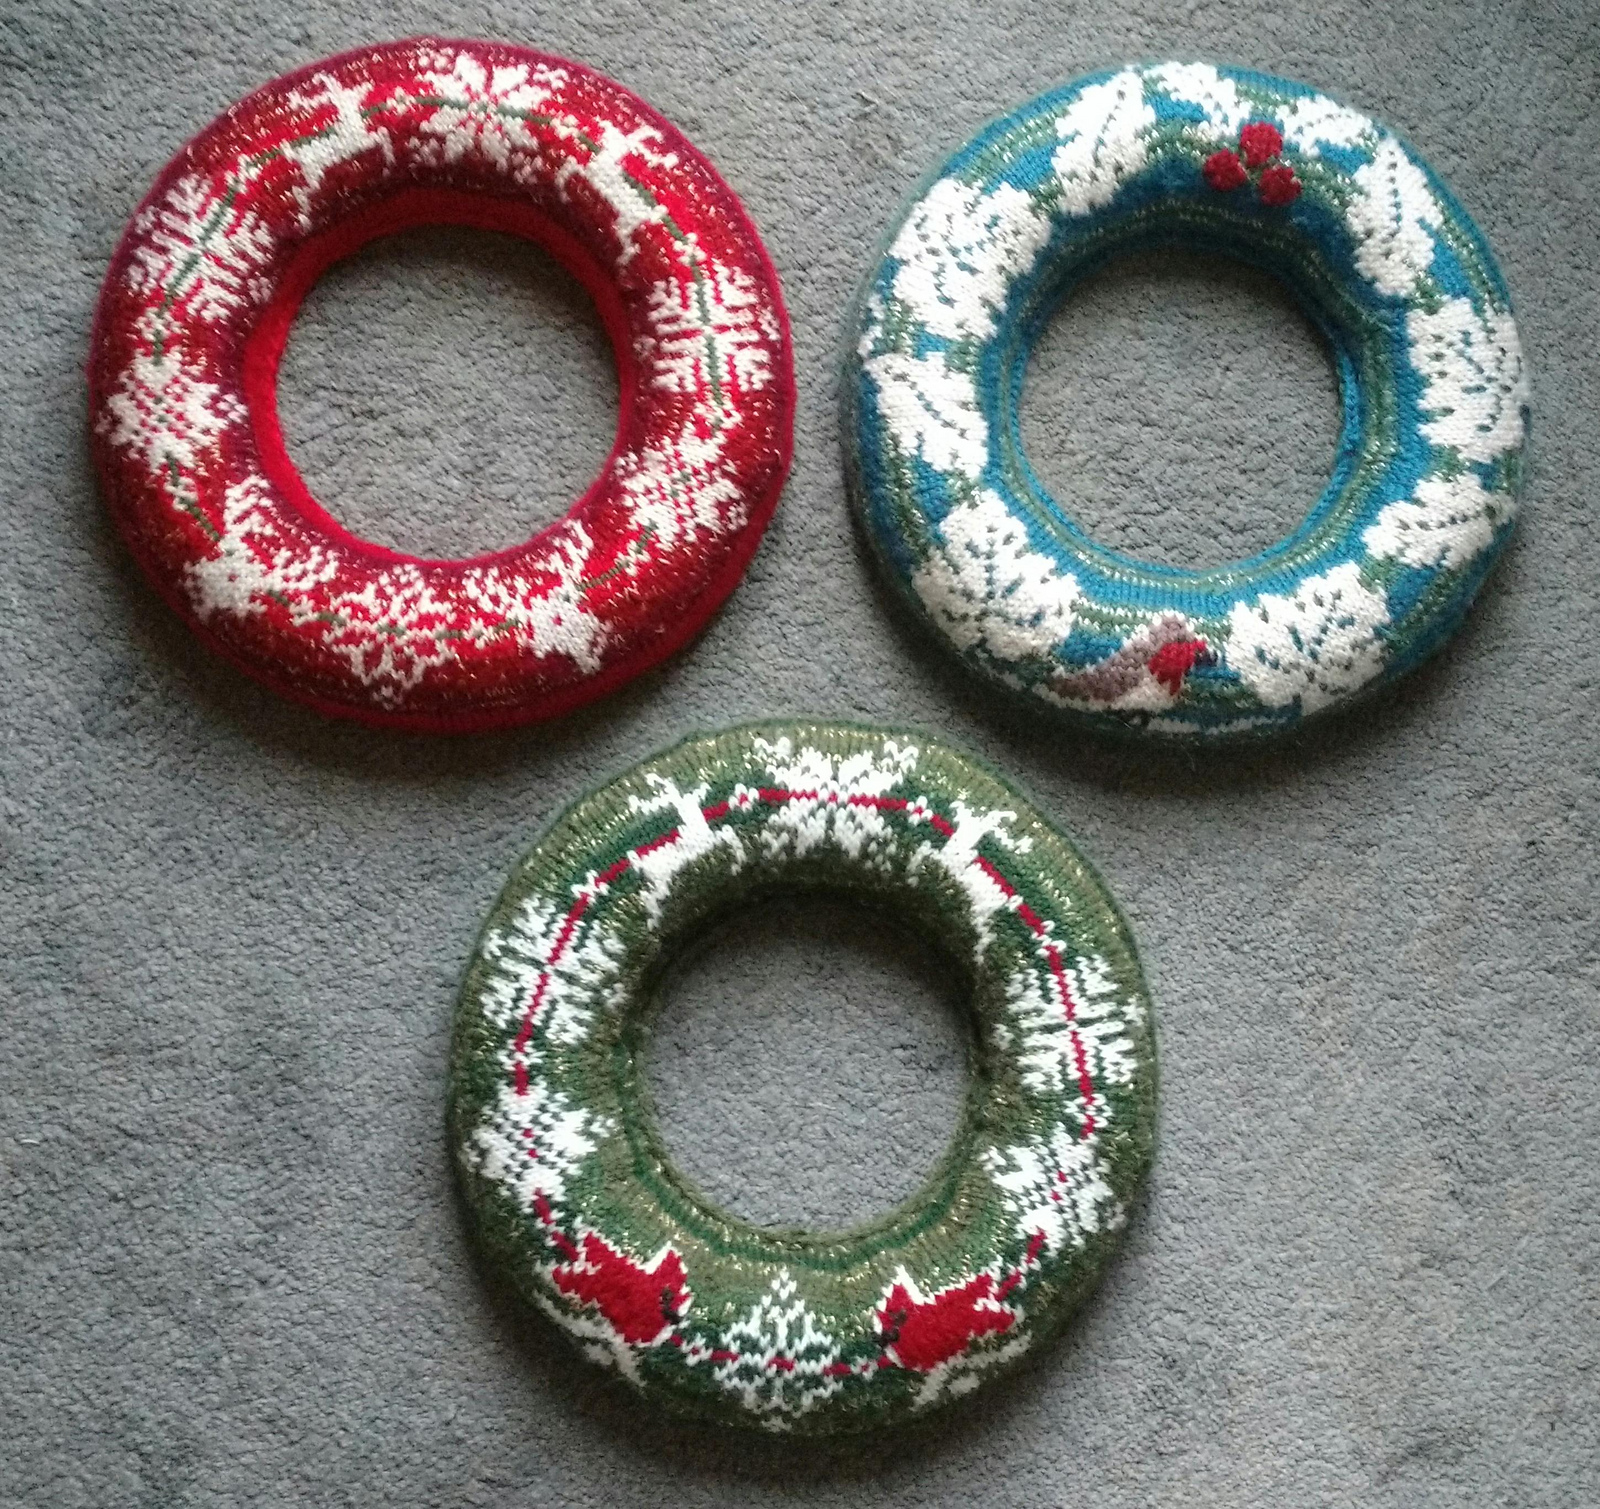 Free Knitting Patterns for Christmas Sweater Wreaths